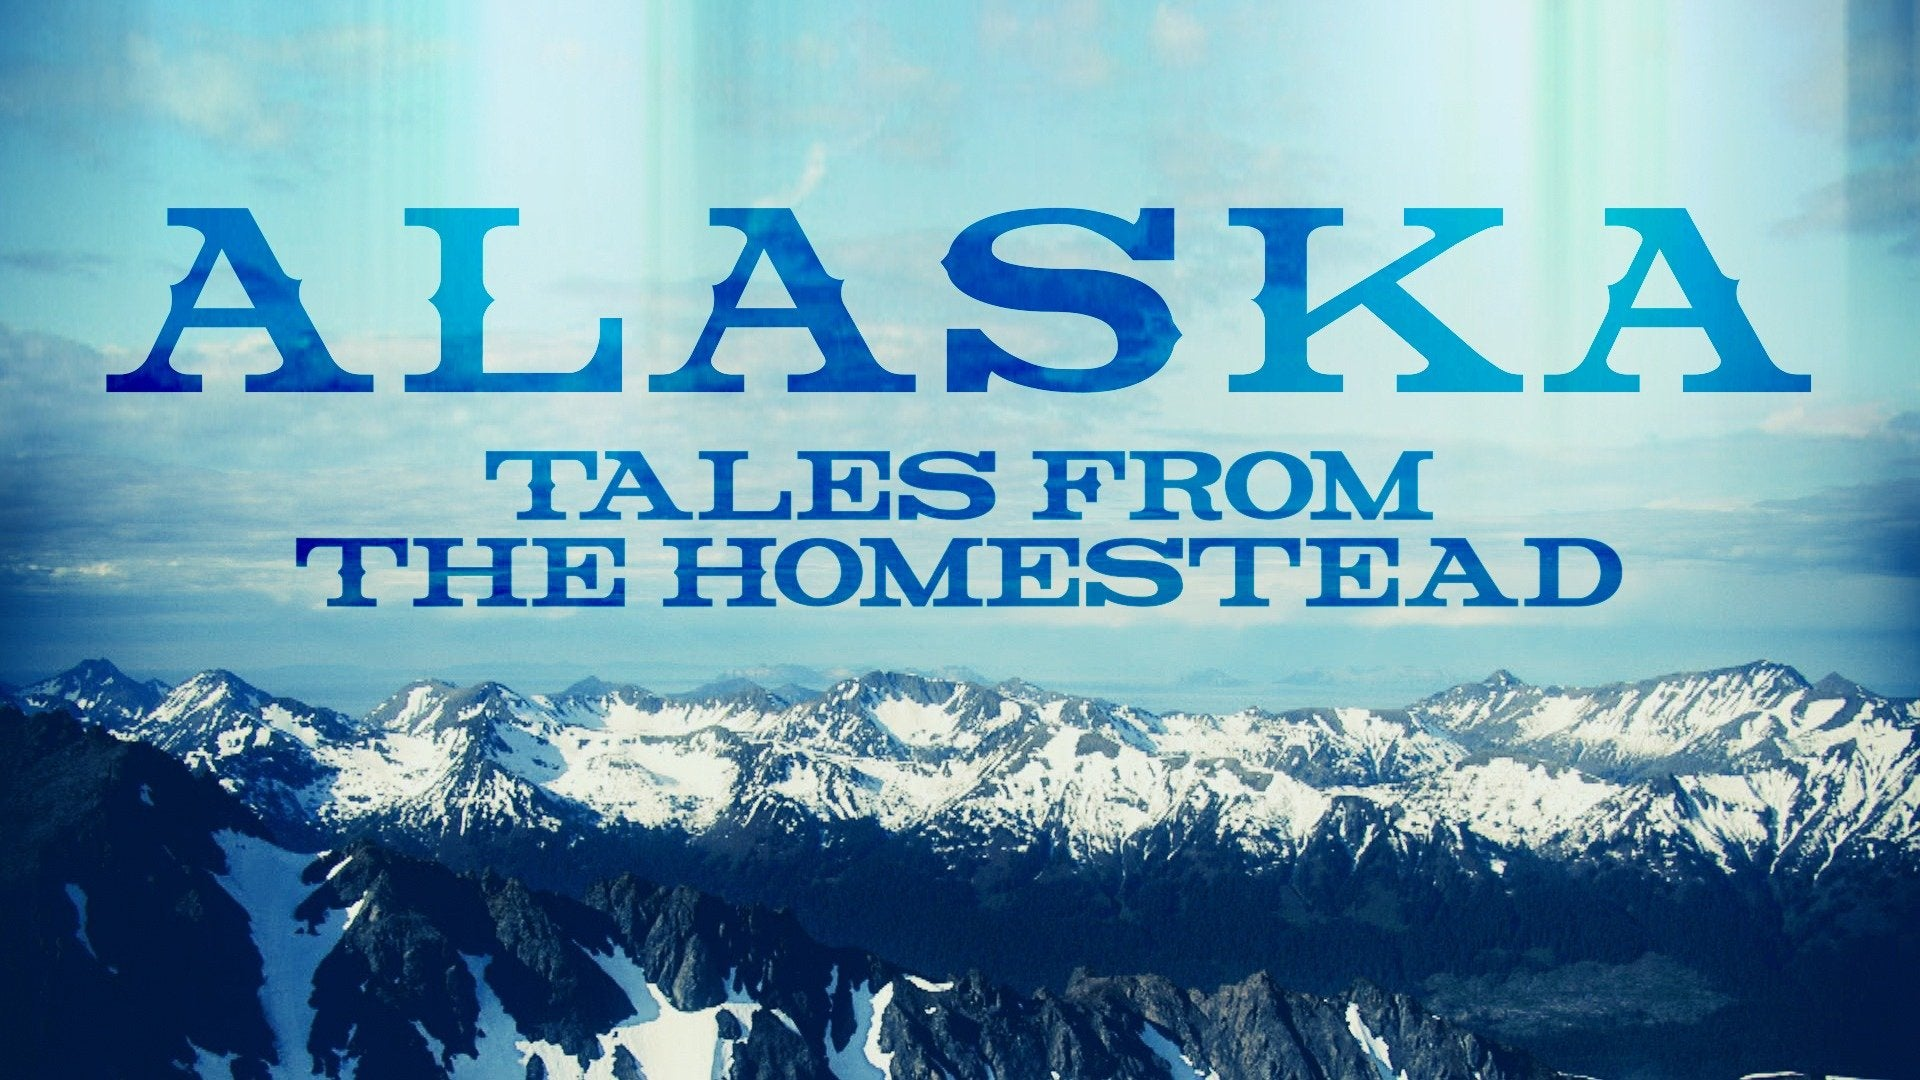 Alaska: The Last Frontier: Tales From the Homestead